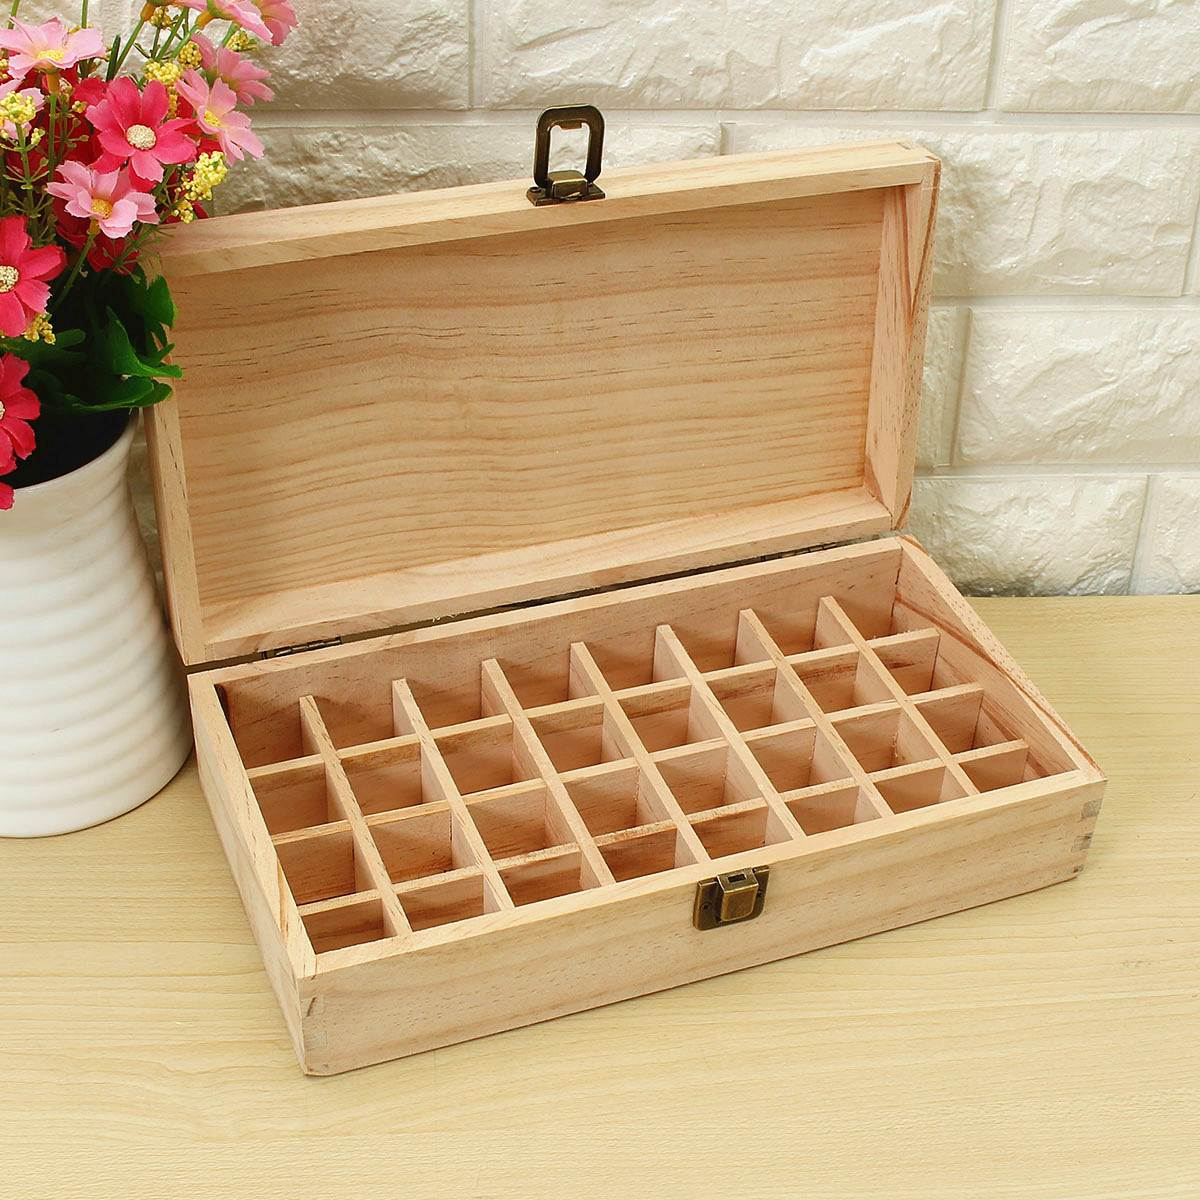 Essential Oils Wooden Box 32 Holes 5ml Or 10ml Bottles SPA YOGA Club Aromatherapy Natural Pine Wood Without Paint(China (Mainland))